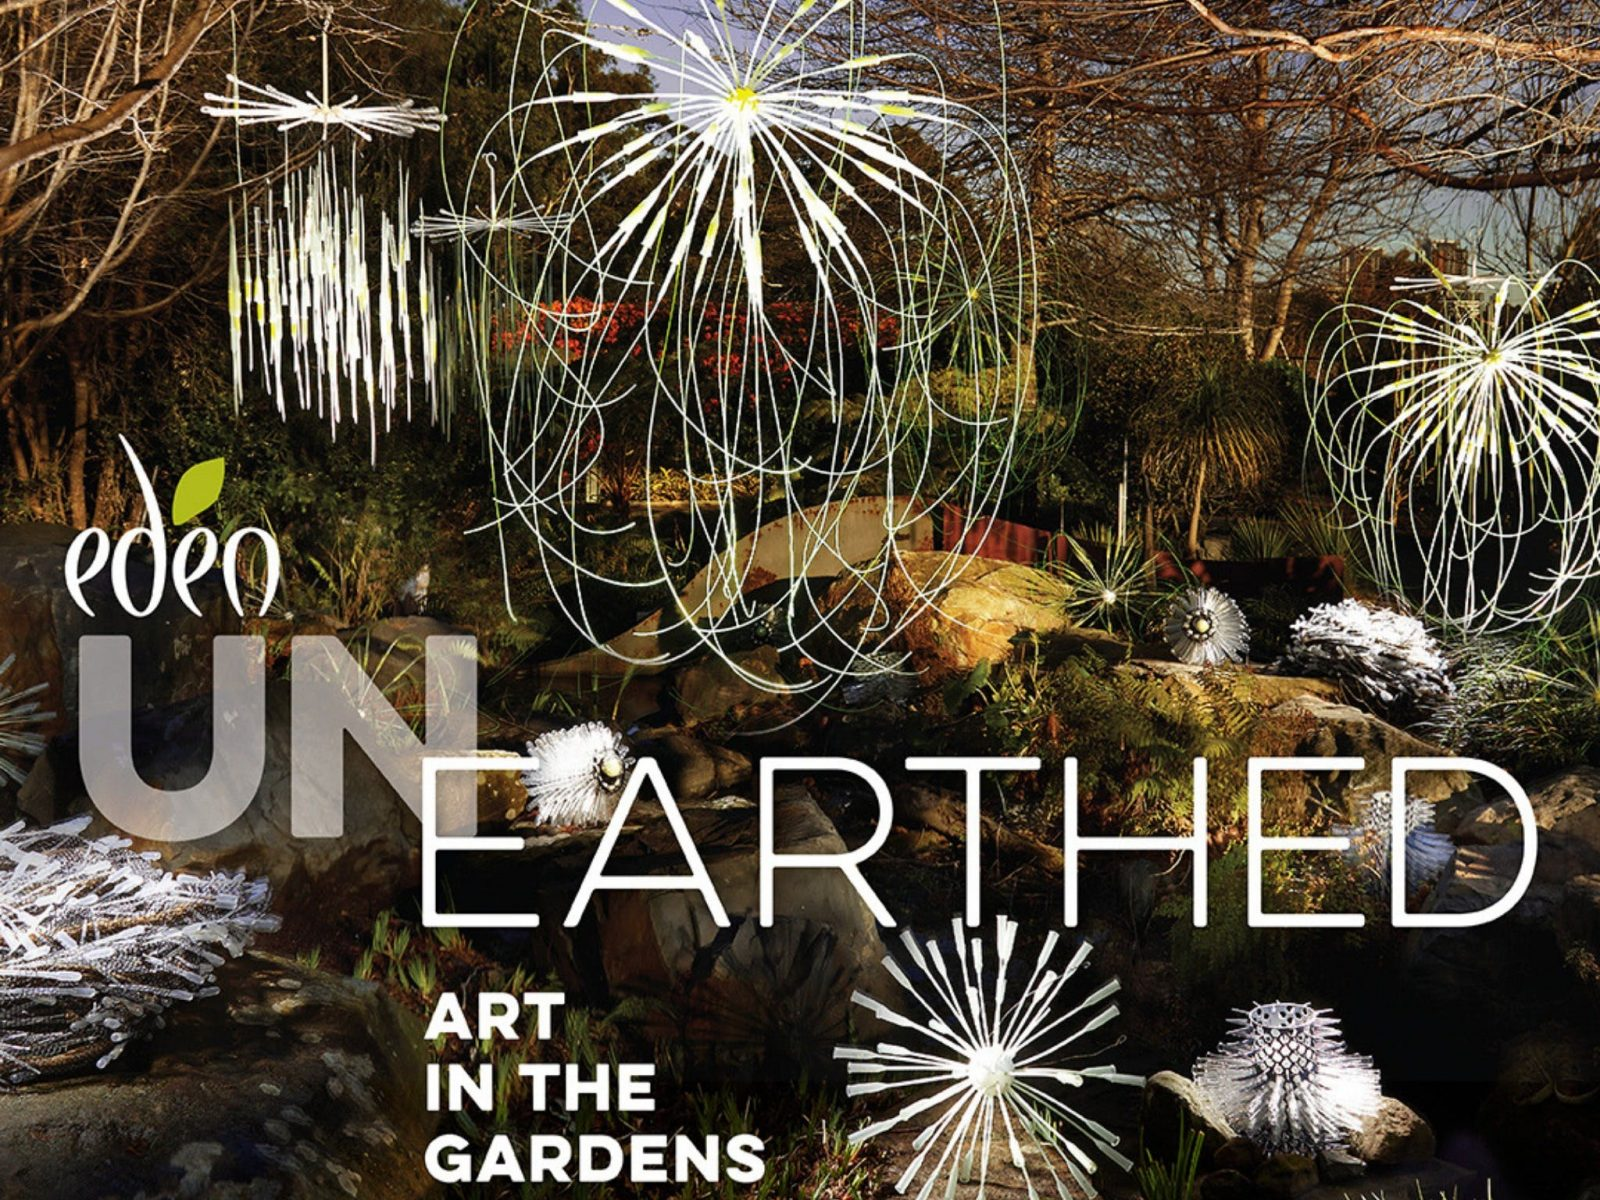 Eden Unearthed; Art in the Gardens